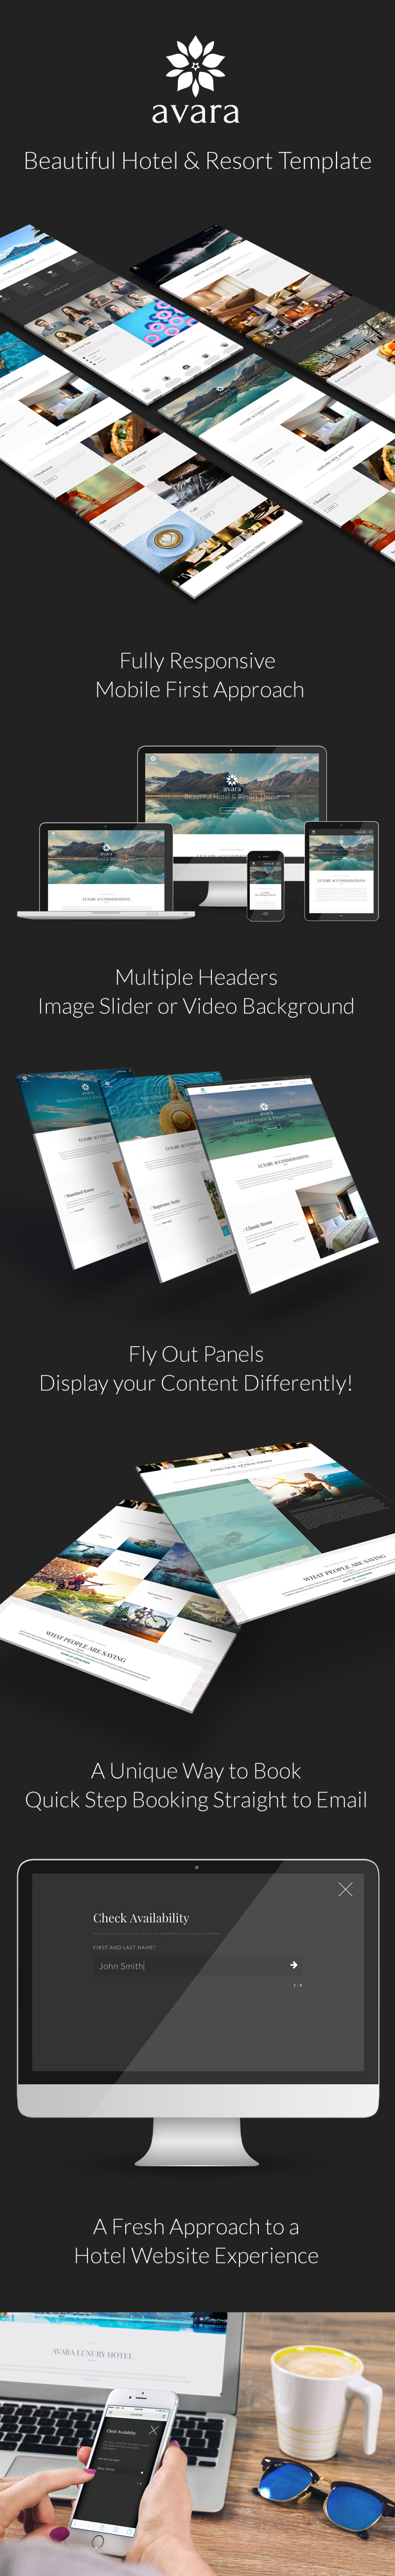 Avara - Hotel and Resort HTML5 Template by ThemeCub | ThemeForest